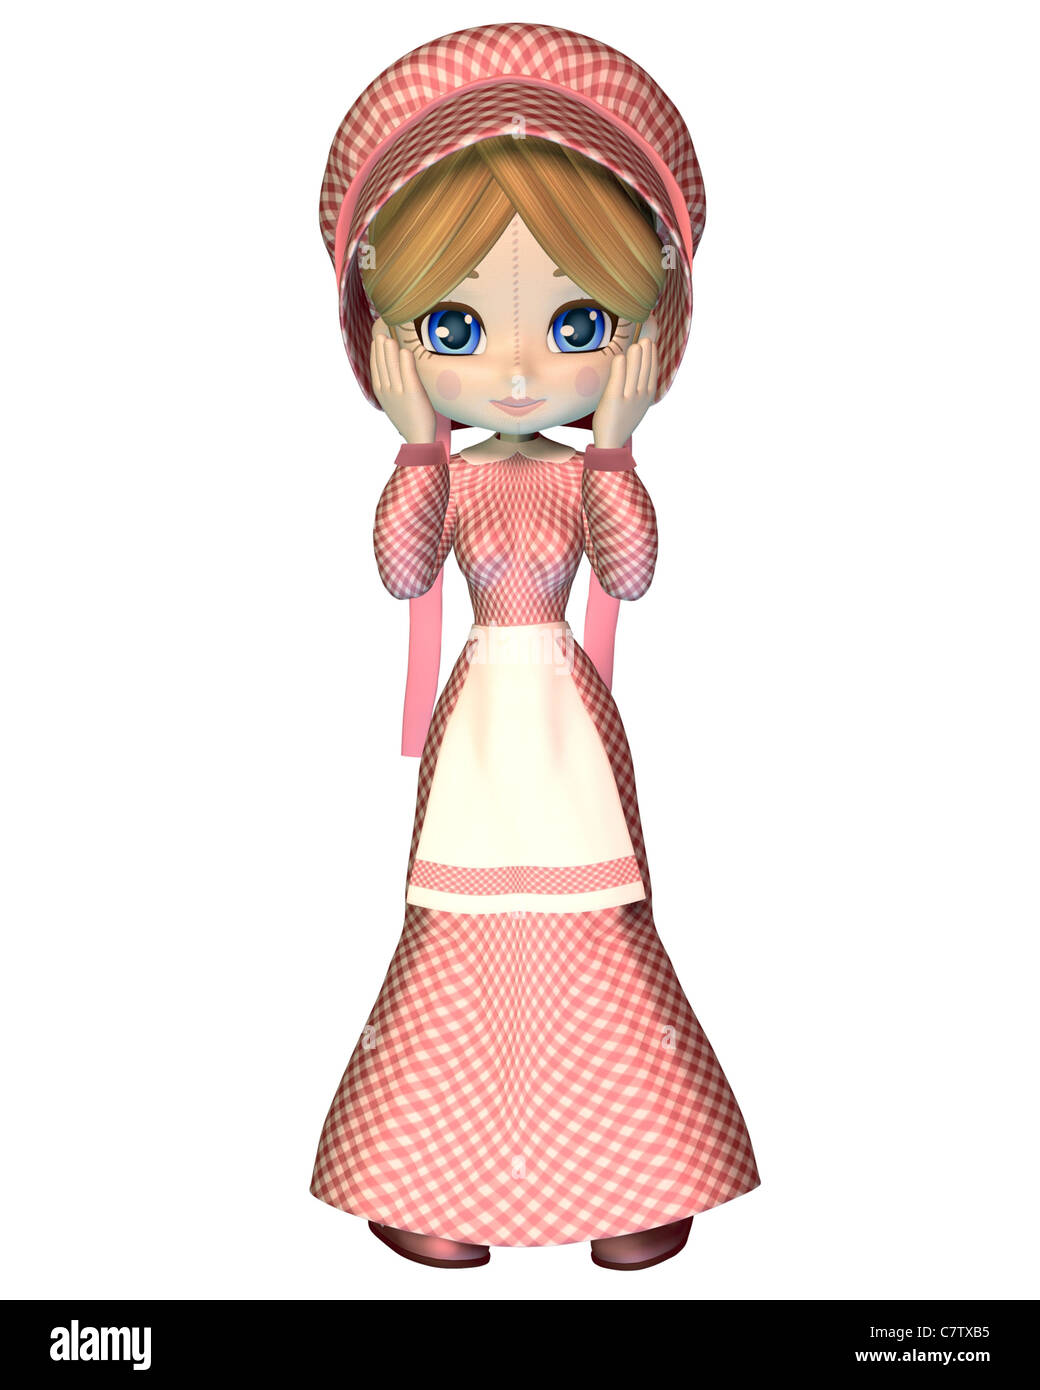 Rag Doll in Pink Gingham Dress and Bonnet - Stock Image